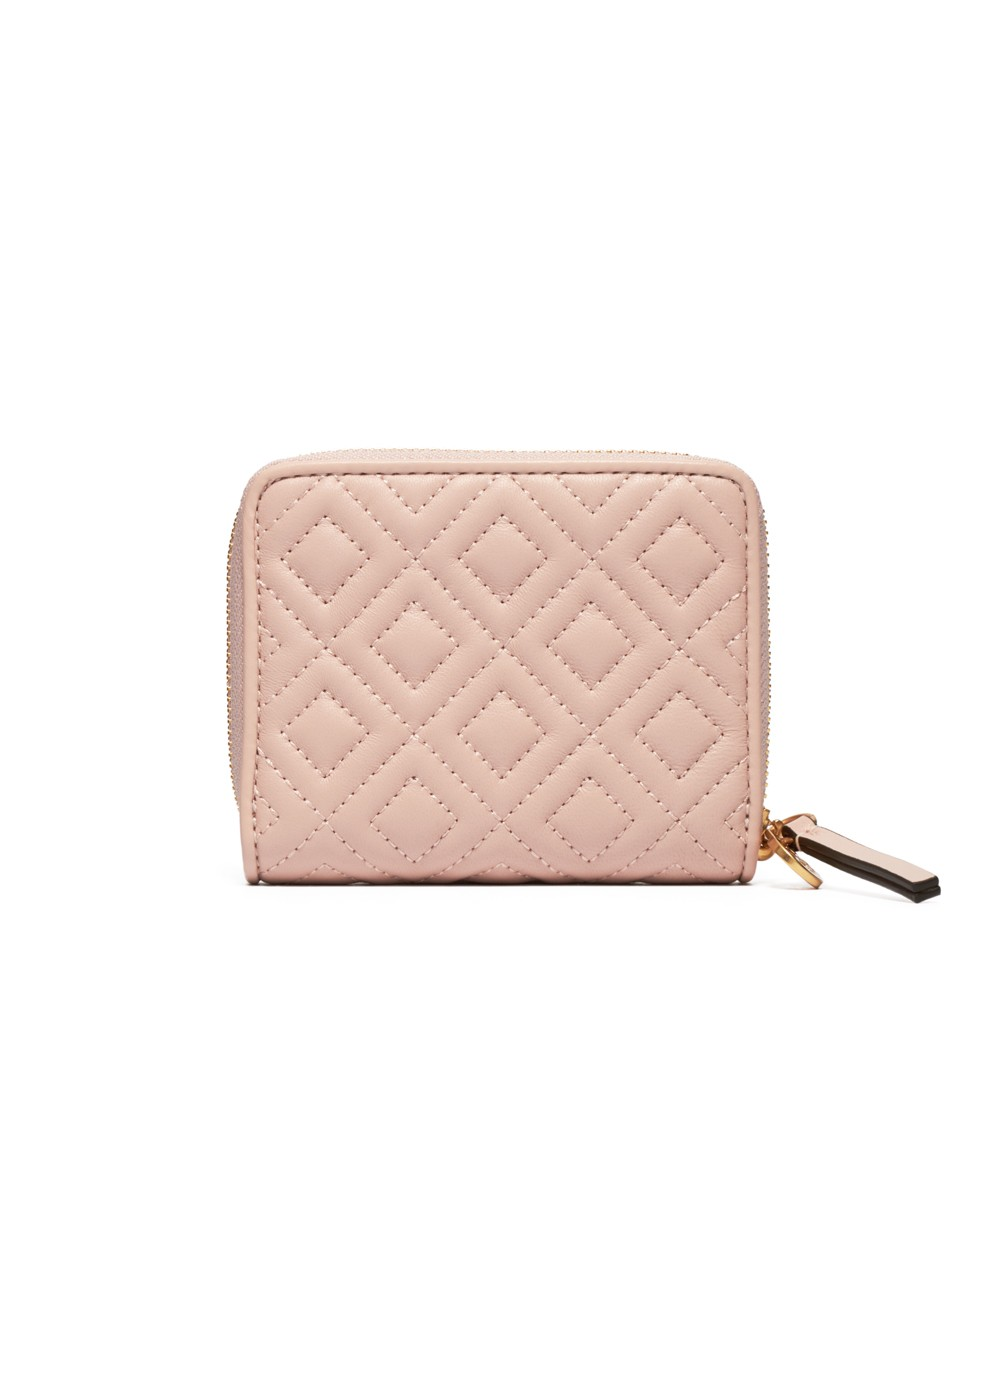 【最大42%OFF】FLEMING MEDIUM WALLET|SHELL PINK|レディース財布|Tory Burch